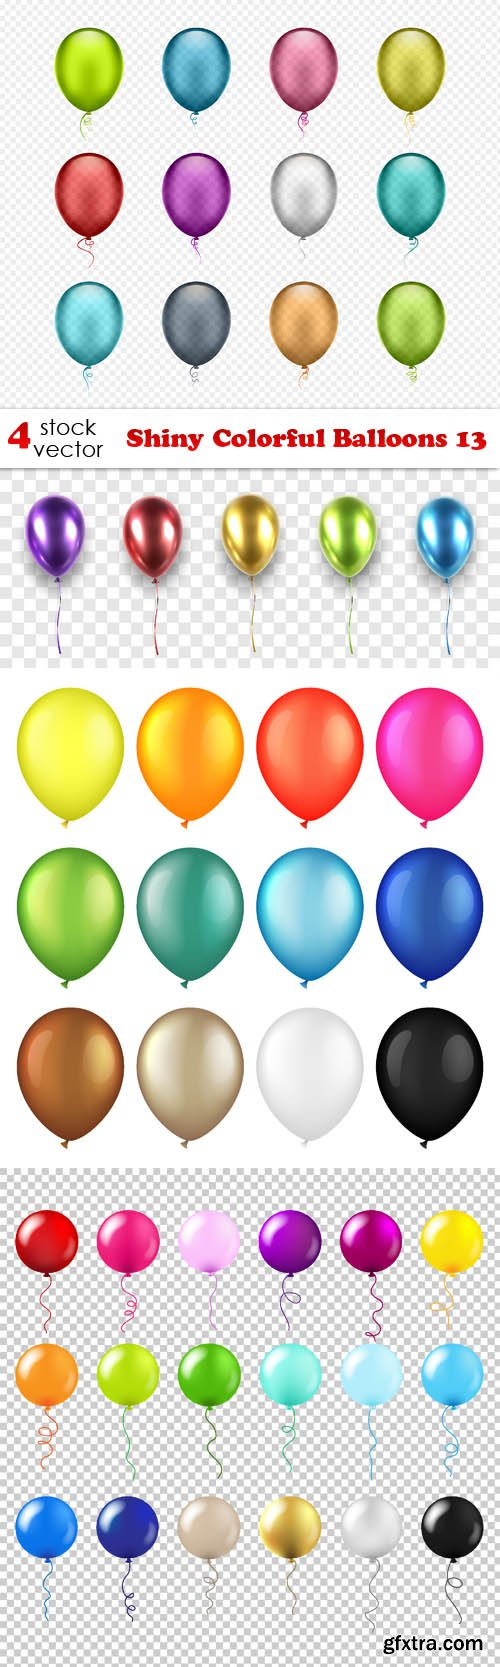 Vectors - Shiny Colorful Balloons 13